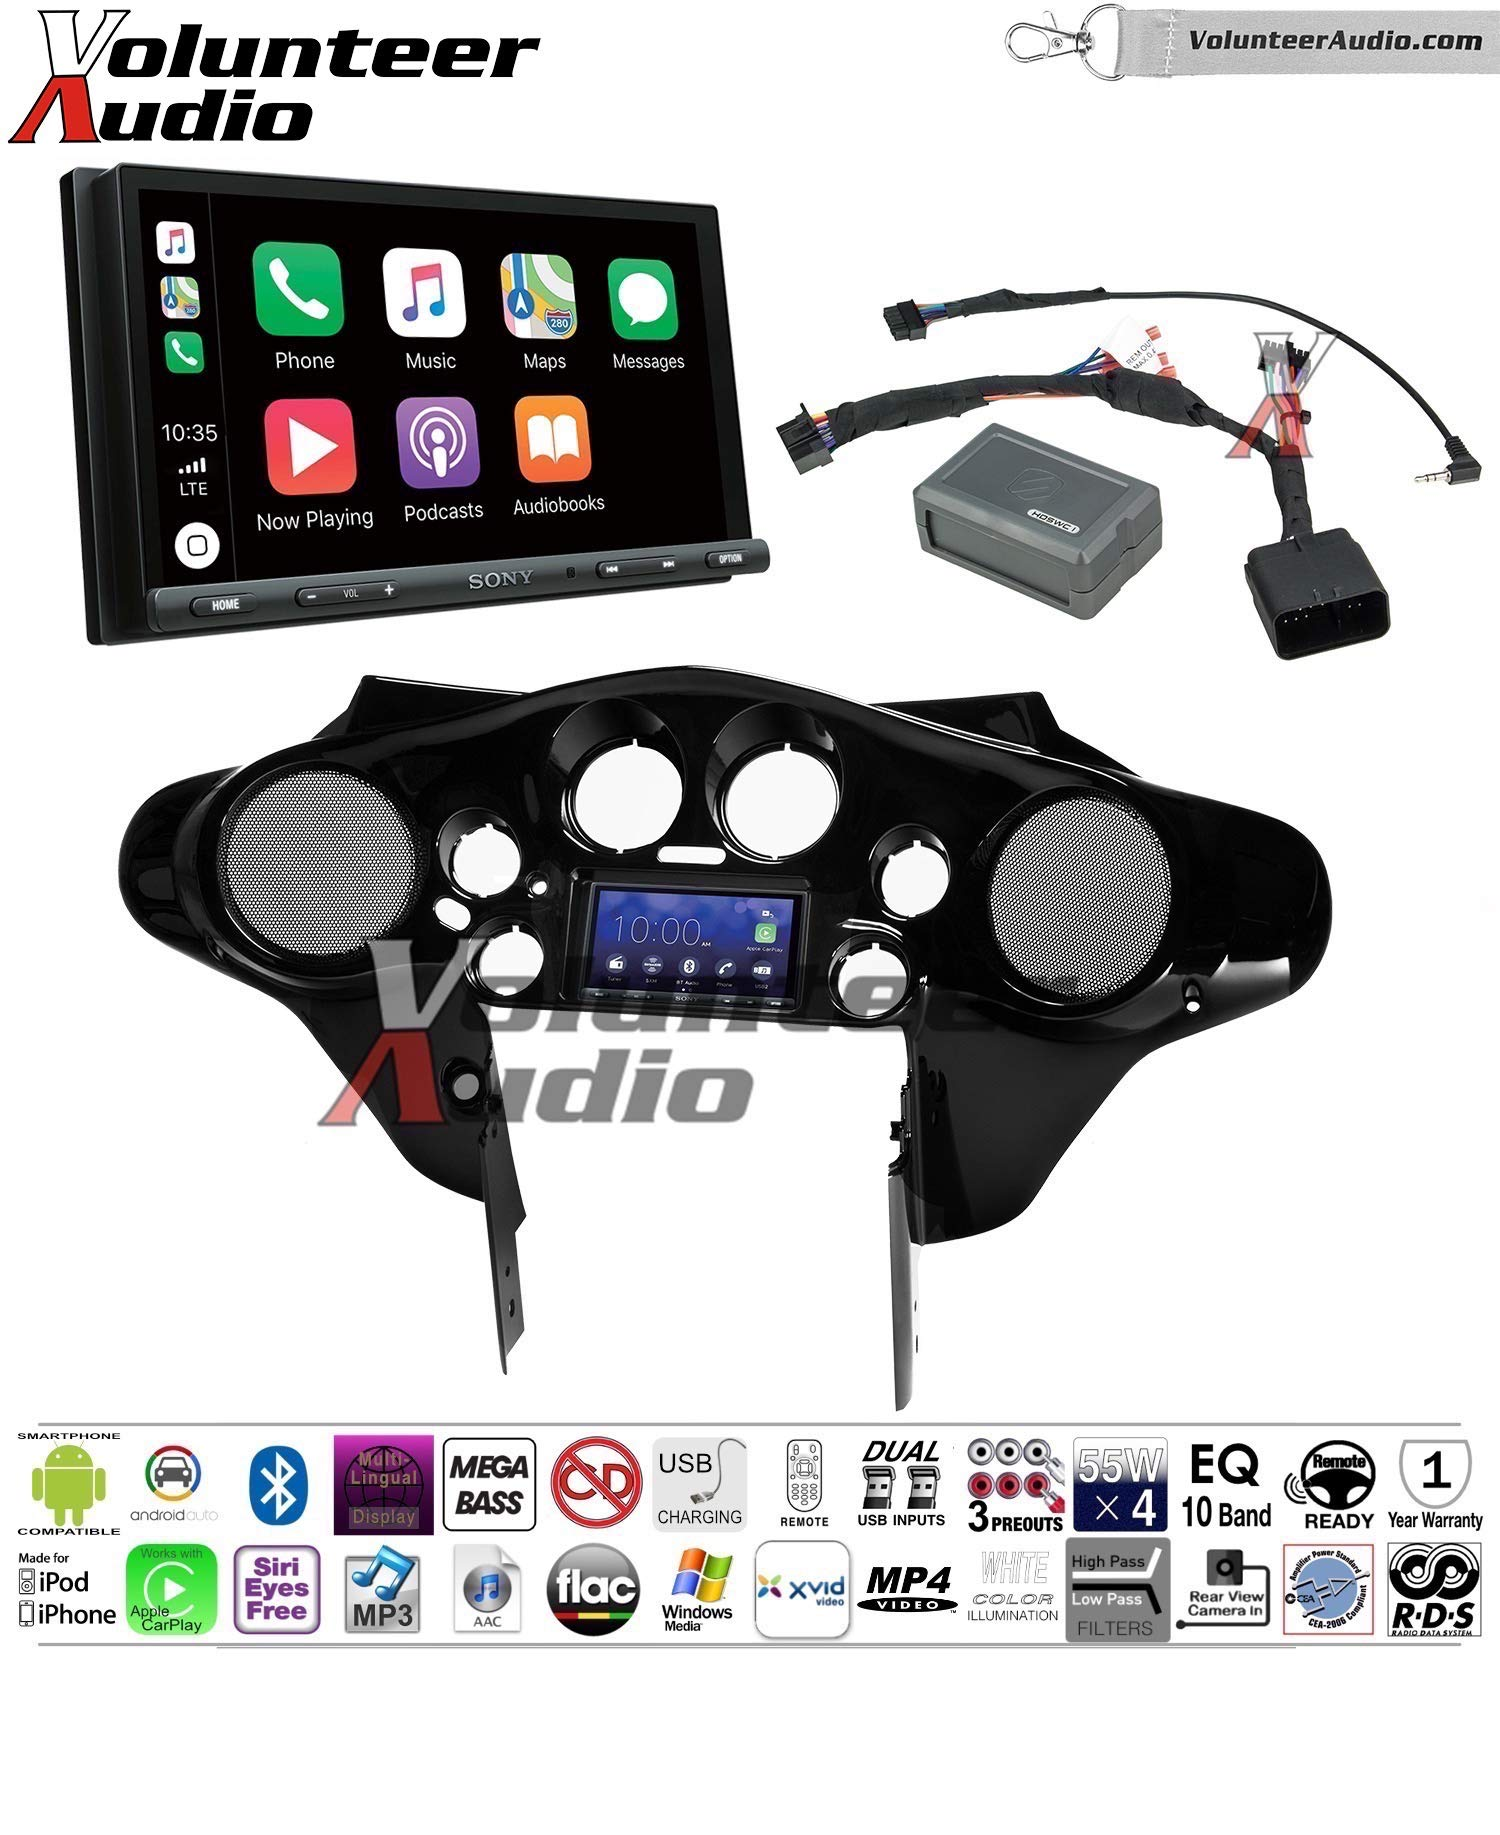 Sony XAV-AX5000 Double Din Touch Screen With Apple CarPlay, Android Auto, Bluetooth Install Kit for 98-13 Harley Davidson Batwing Fairing, Non-Road Glide Models, Metra 1 Stage Urethane Black by Volunteer Audio (Image #1)